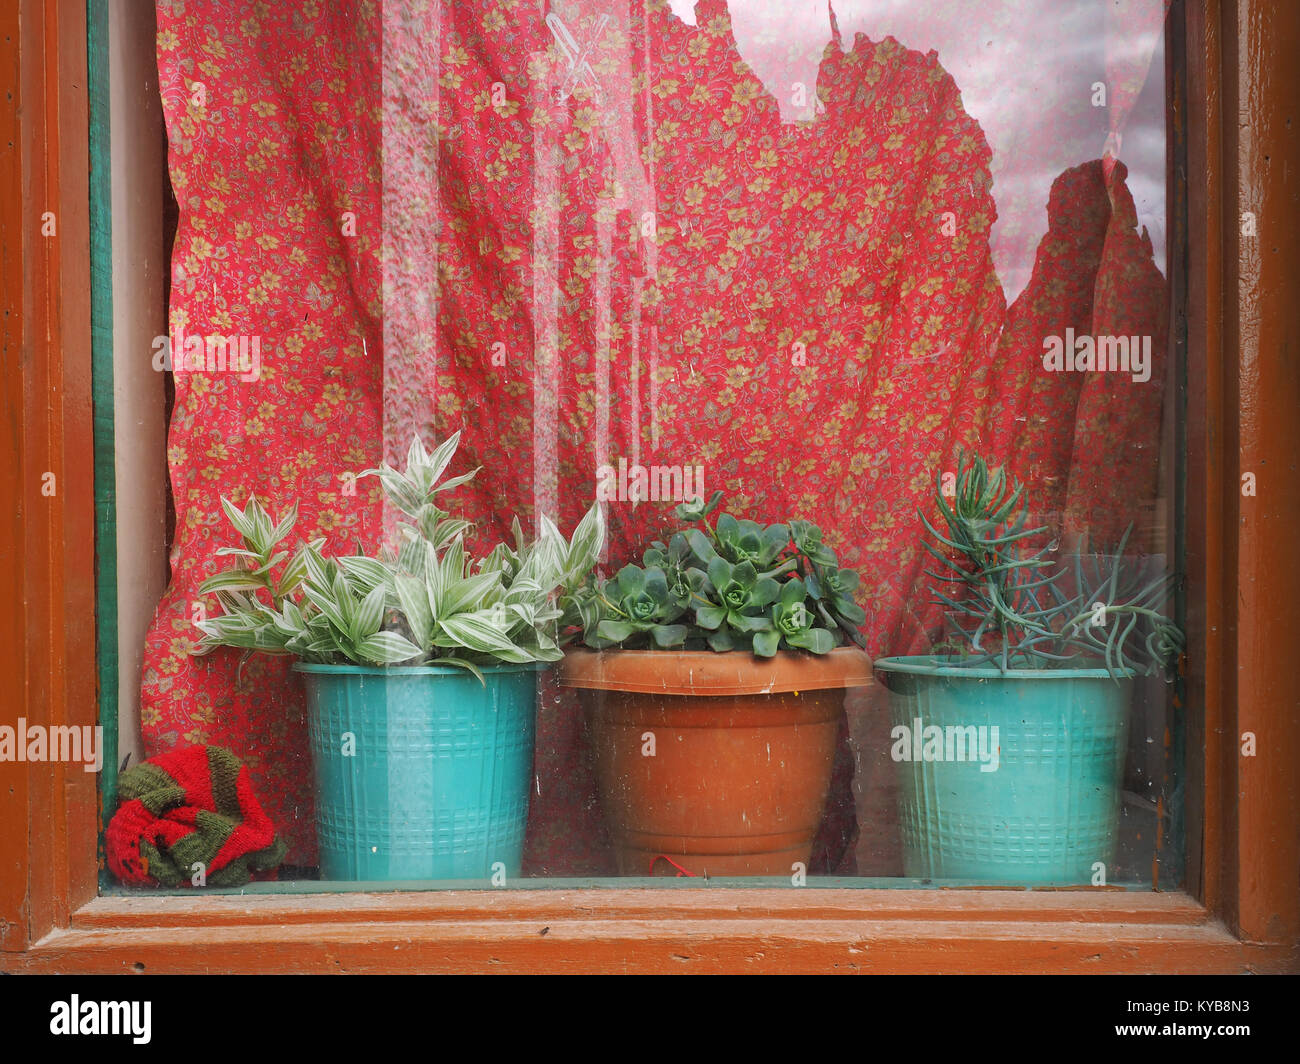 A Window With Bright Red Curtains Brown Vintage Frame But Sill Three Houseplants In Clay Pots